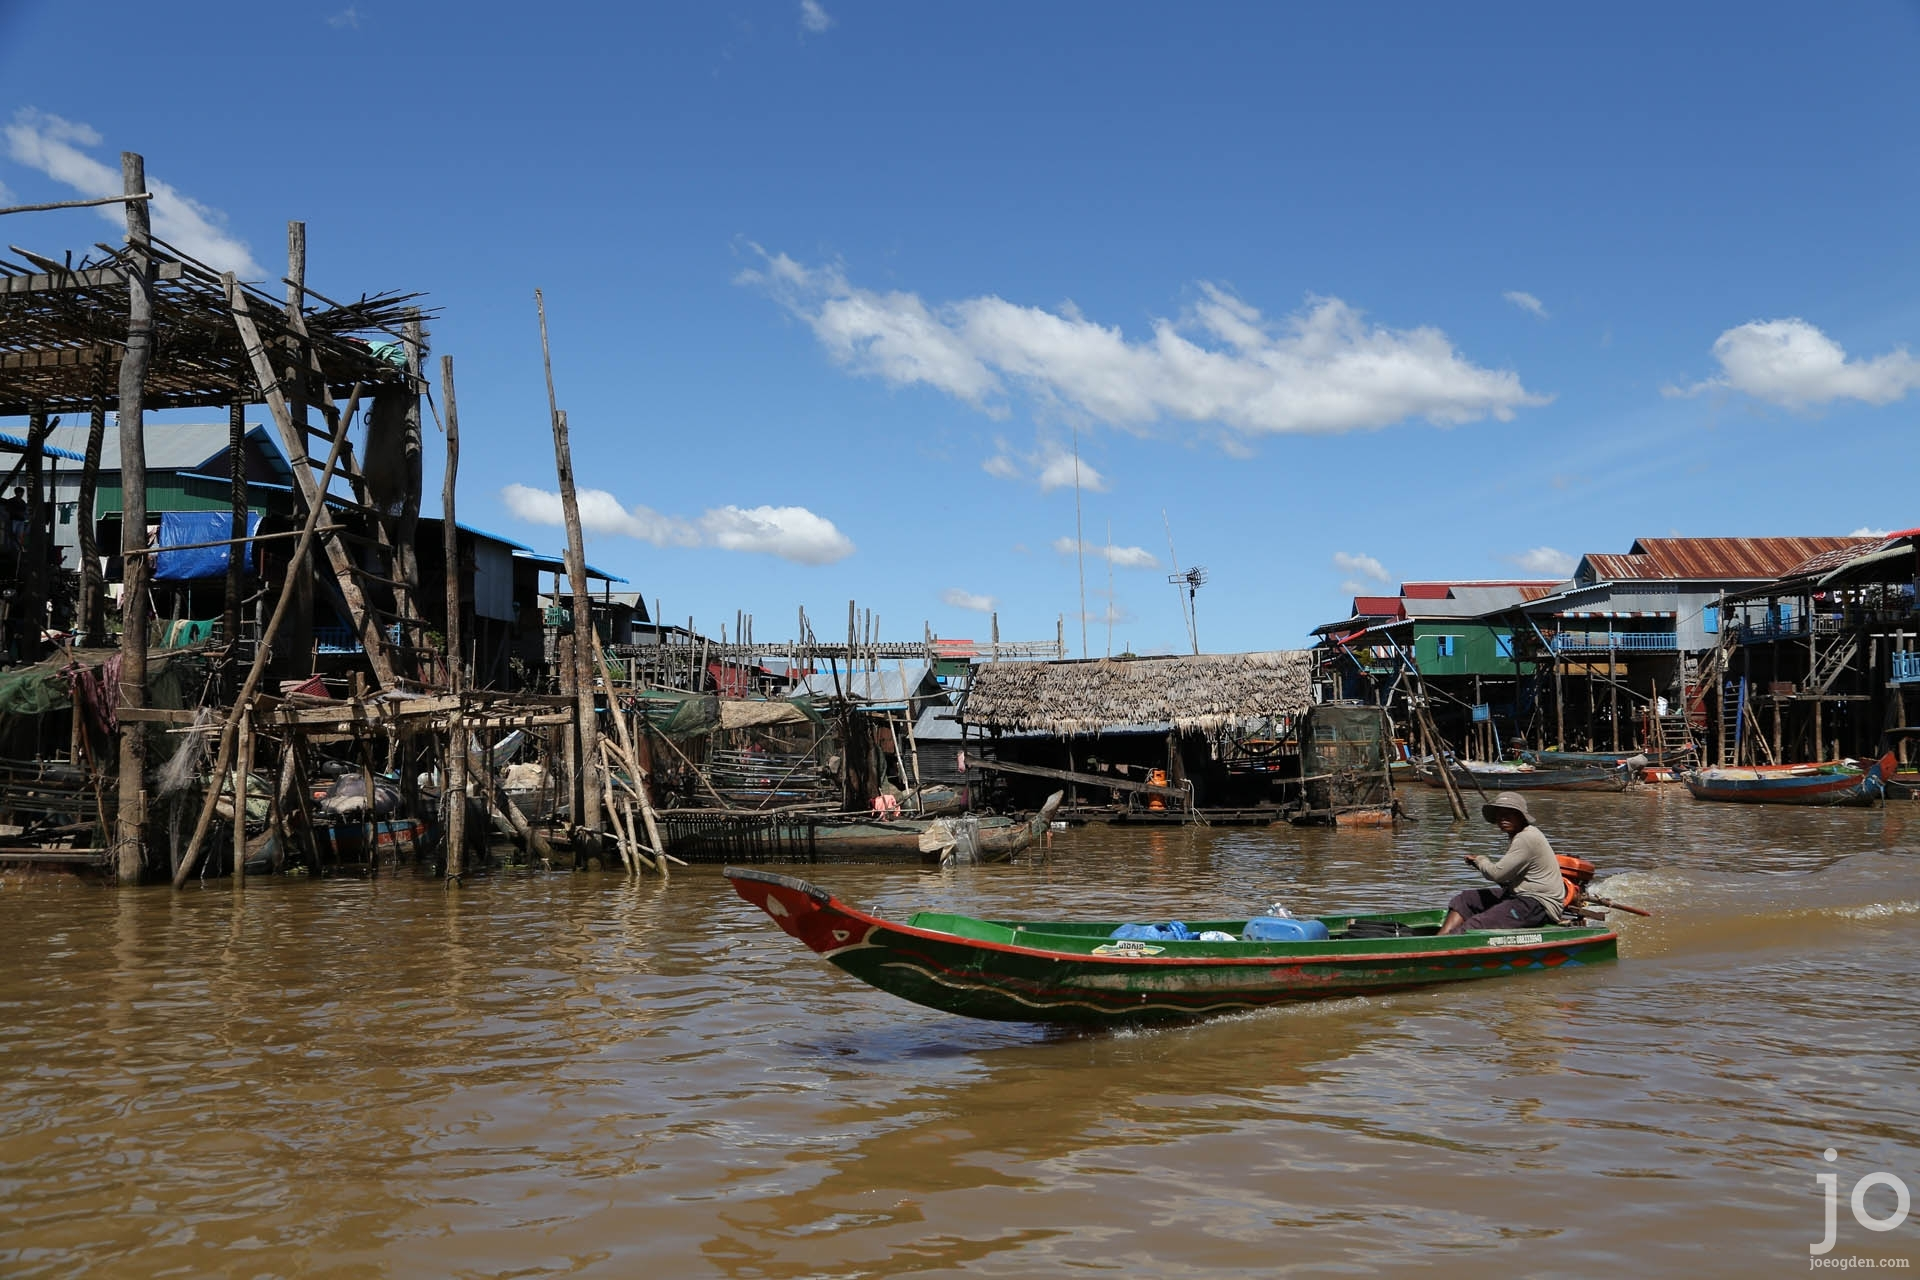 Floating village on the Tonle Sap lake, Siem Reap, Cambodia